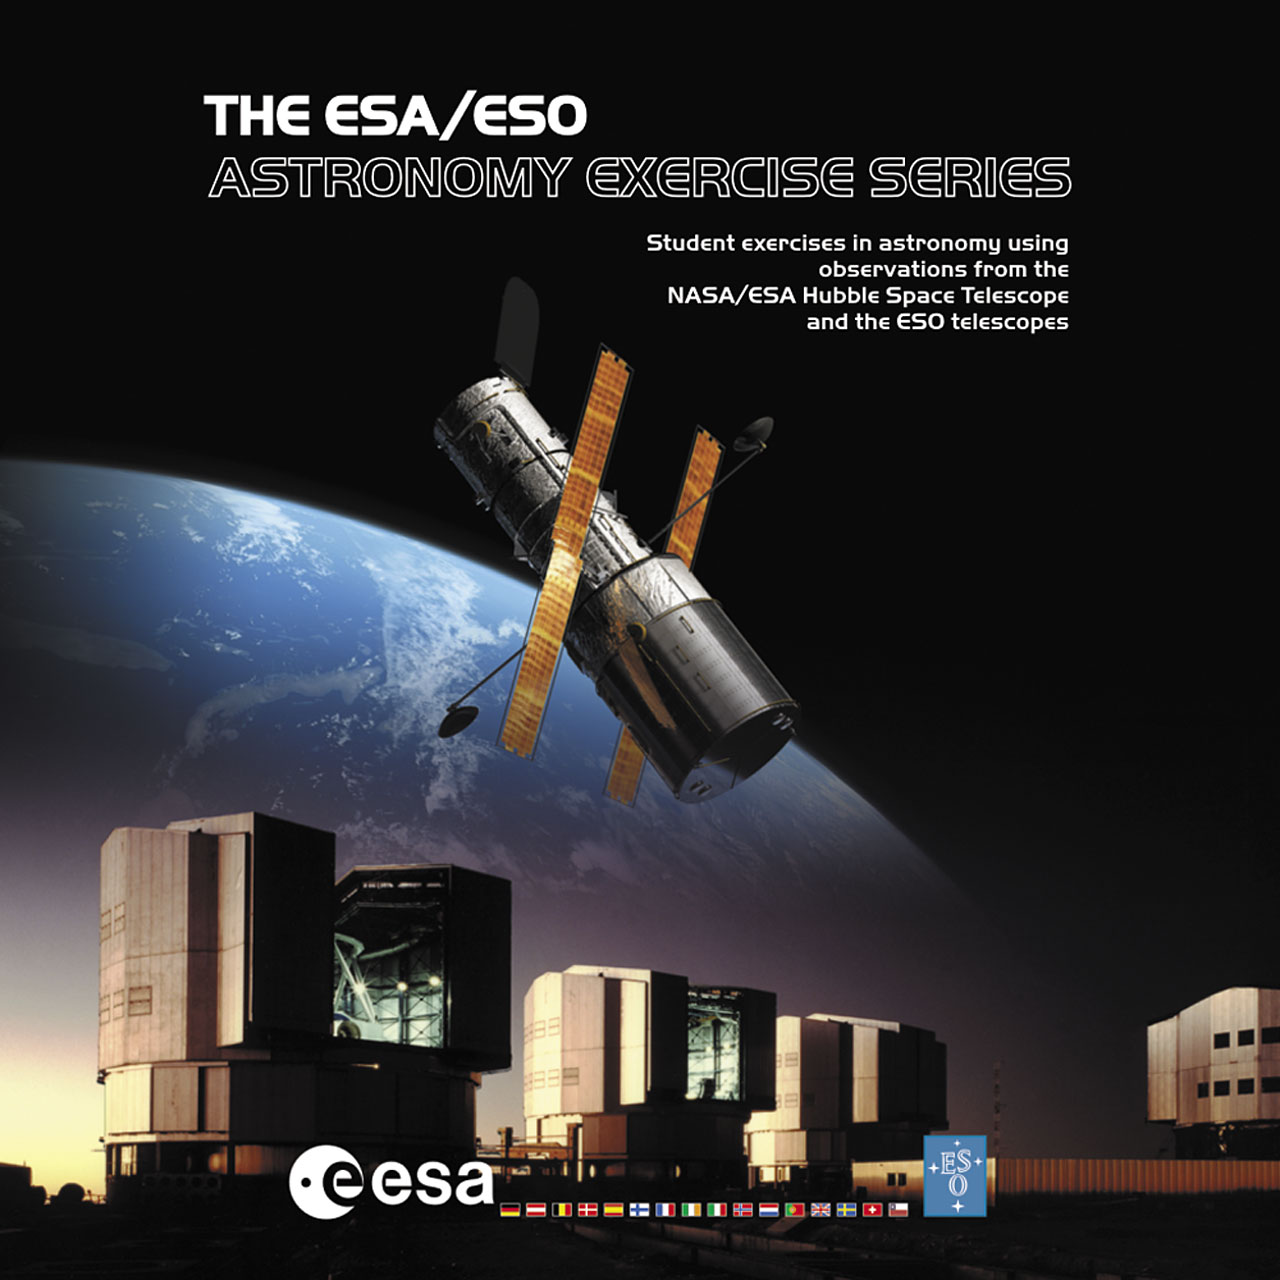 CD-ROM: The ESA/ESO Astronomy Exercise Series | ESO